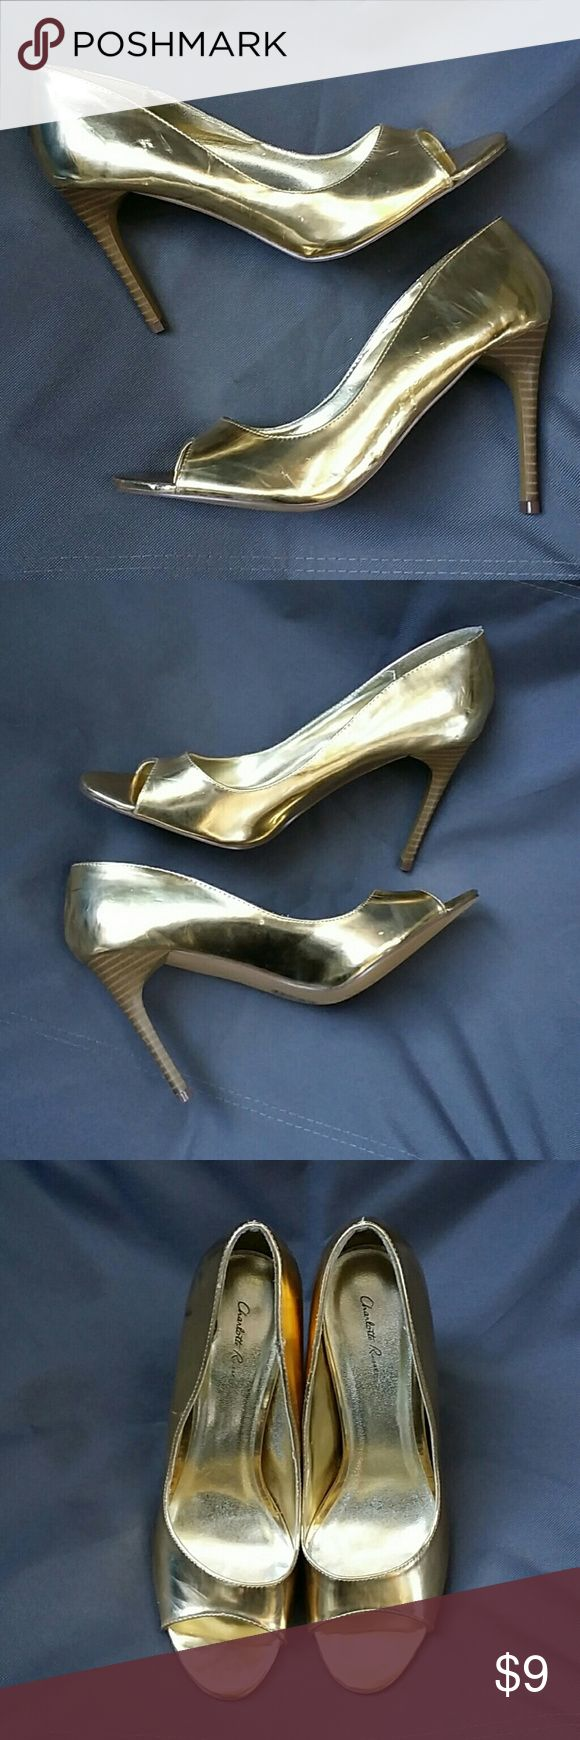 Gold peep toe heels size 9 Gold peep toe high heel - Charlotte Russe - purchased them from another posher and unfortunately they do not fit me - some scuffs on the sides barely noticeable - feels like new Charlotte Russe Shoes Heels